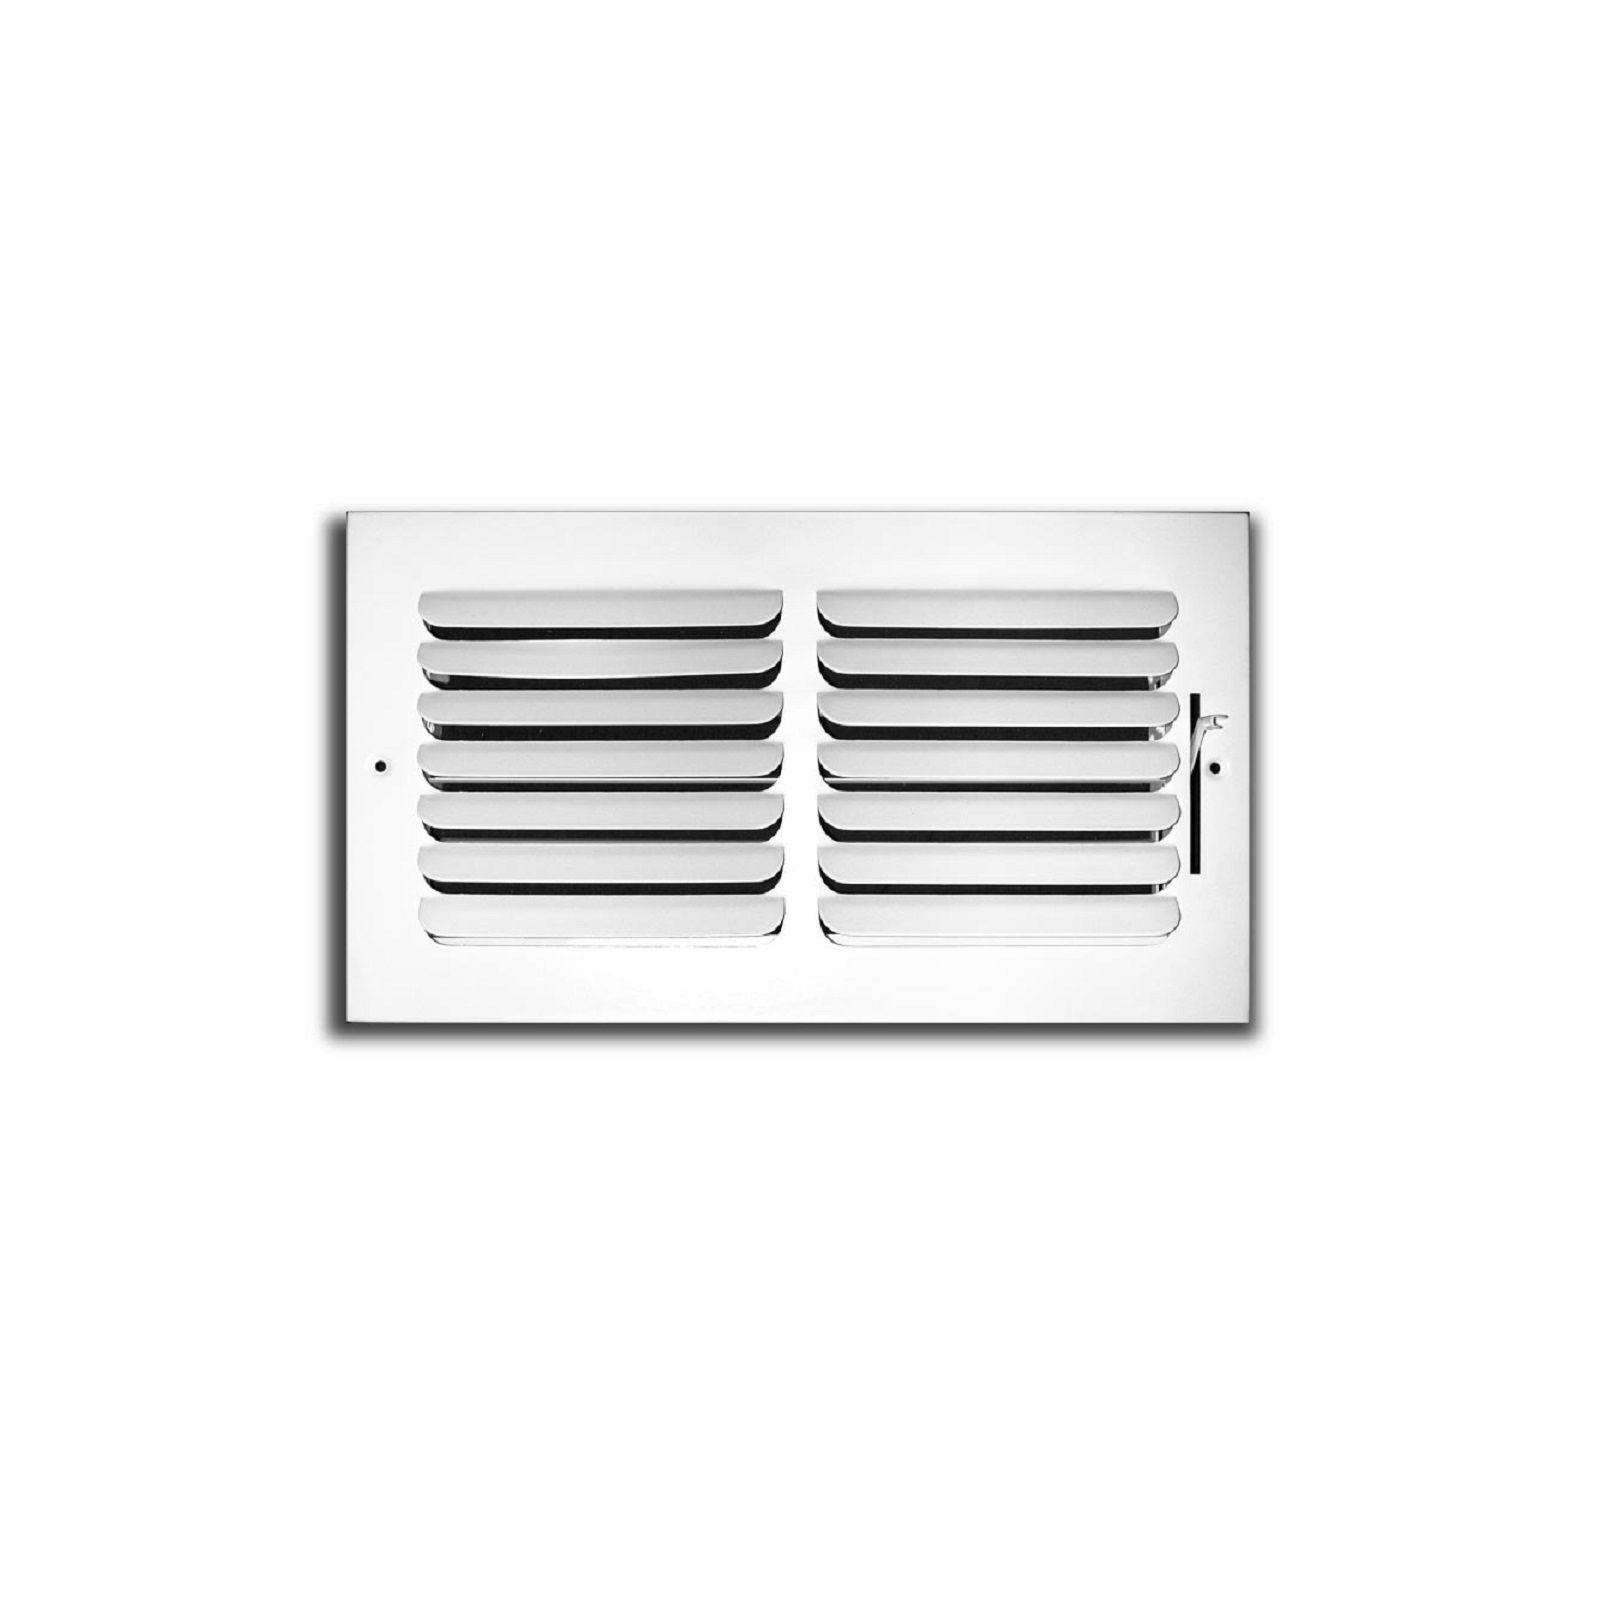 "TRUaire 401M 14X06 - Fixed Curved Blade Wall/Ceiling Register 401M With Multi Shutter Damper, 1-Way, White, 14"" X 06"""